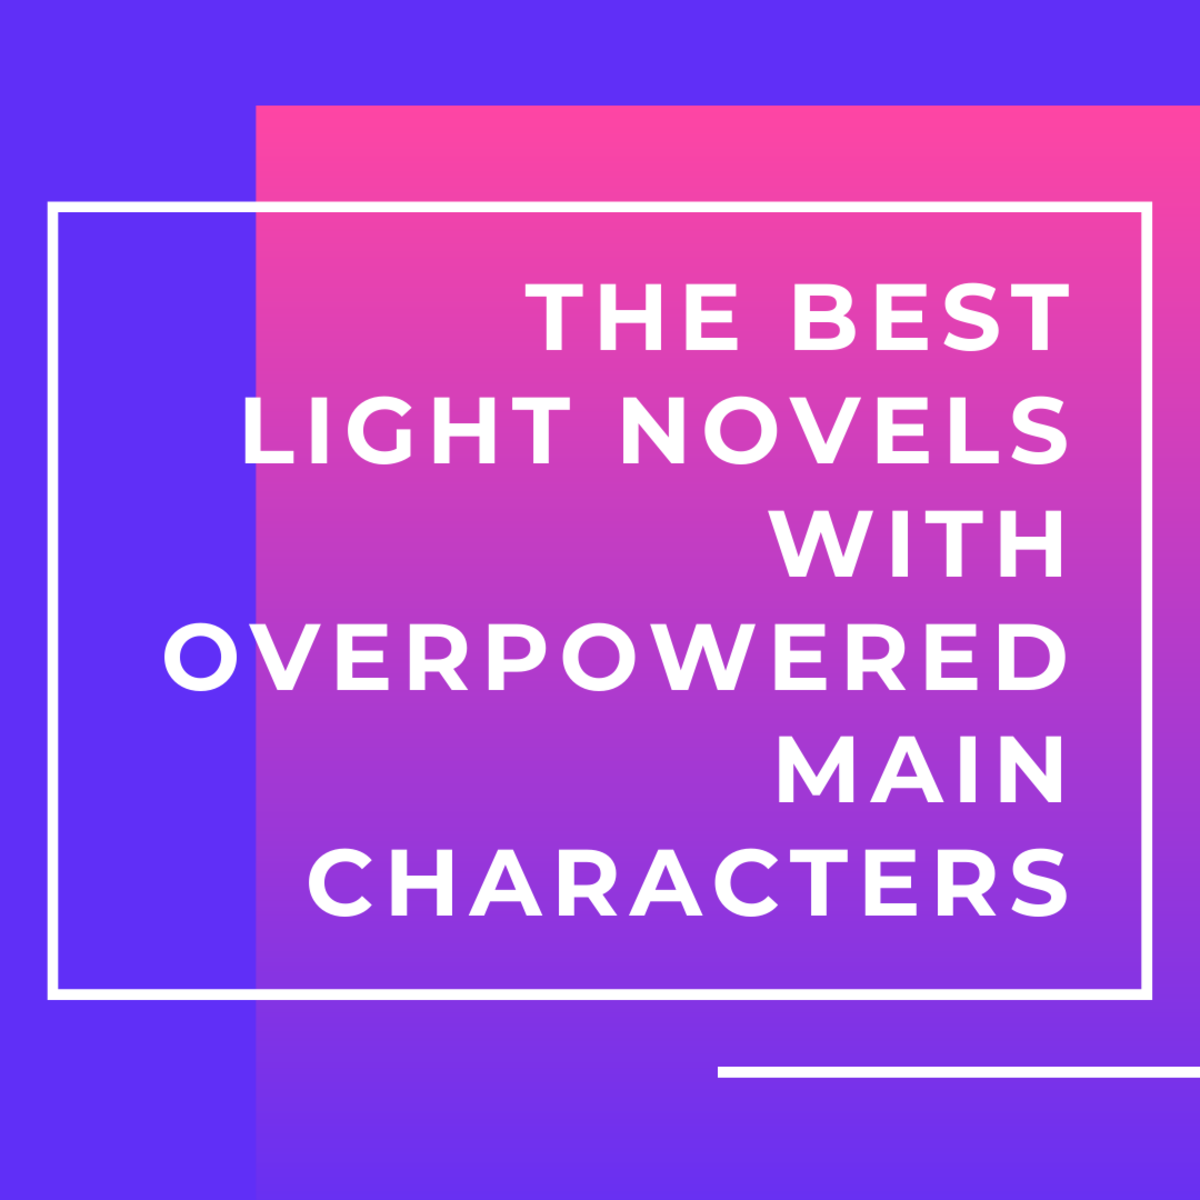 The Top 15 Light Novels With Overpowered Main Characters